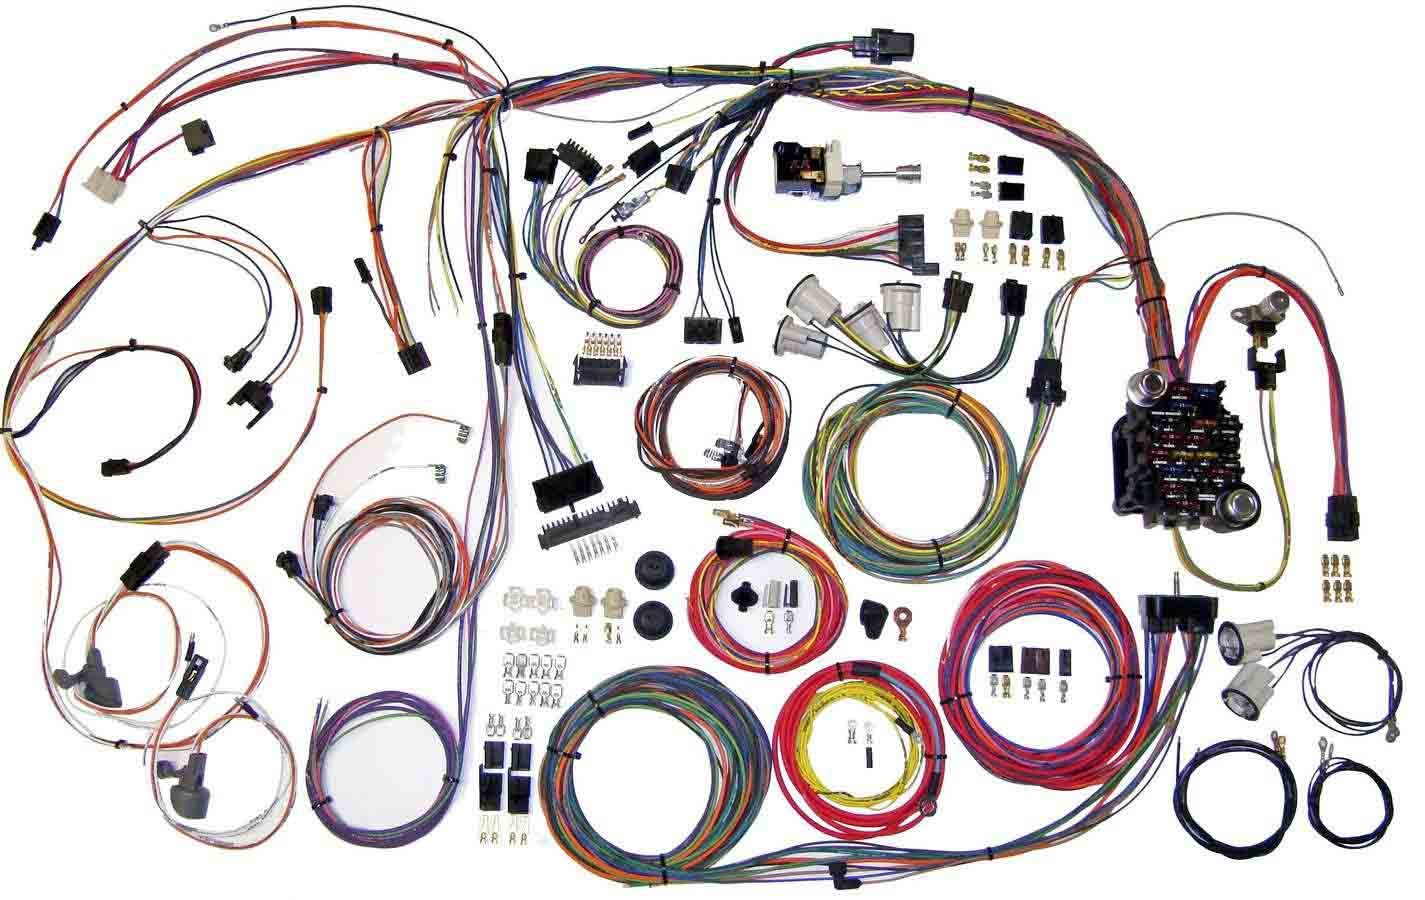 049984 1970 Chevelle Wiring Harness Diagram Wiring Library